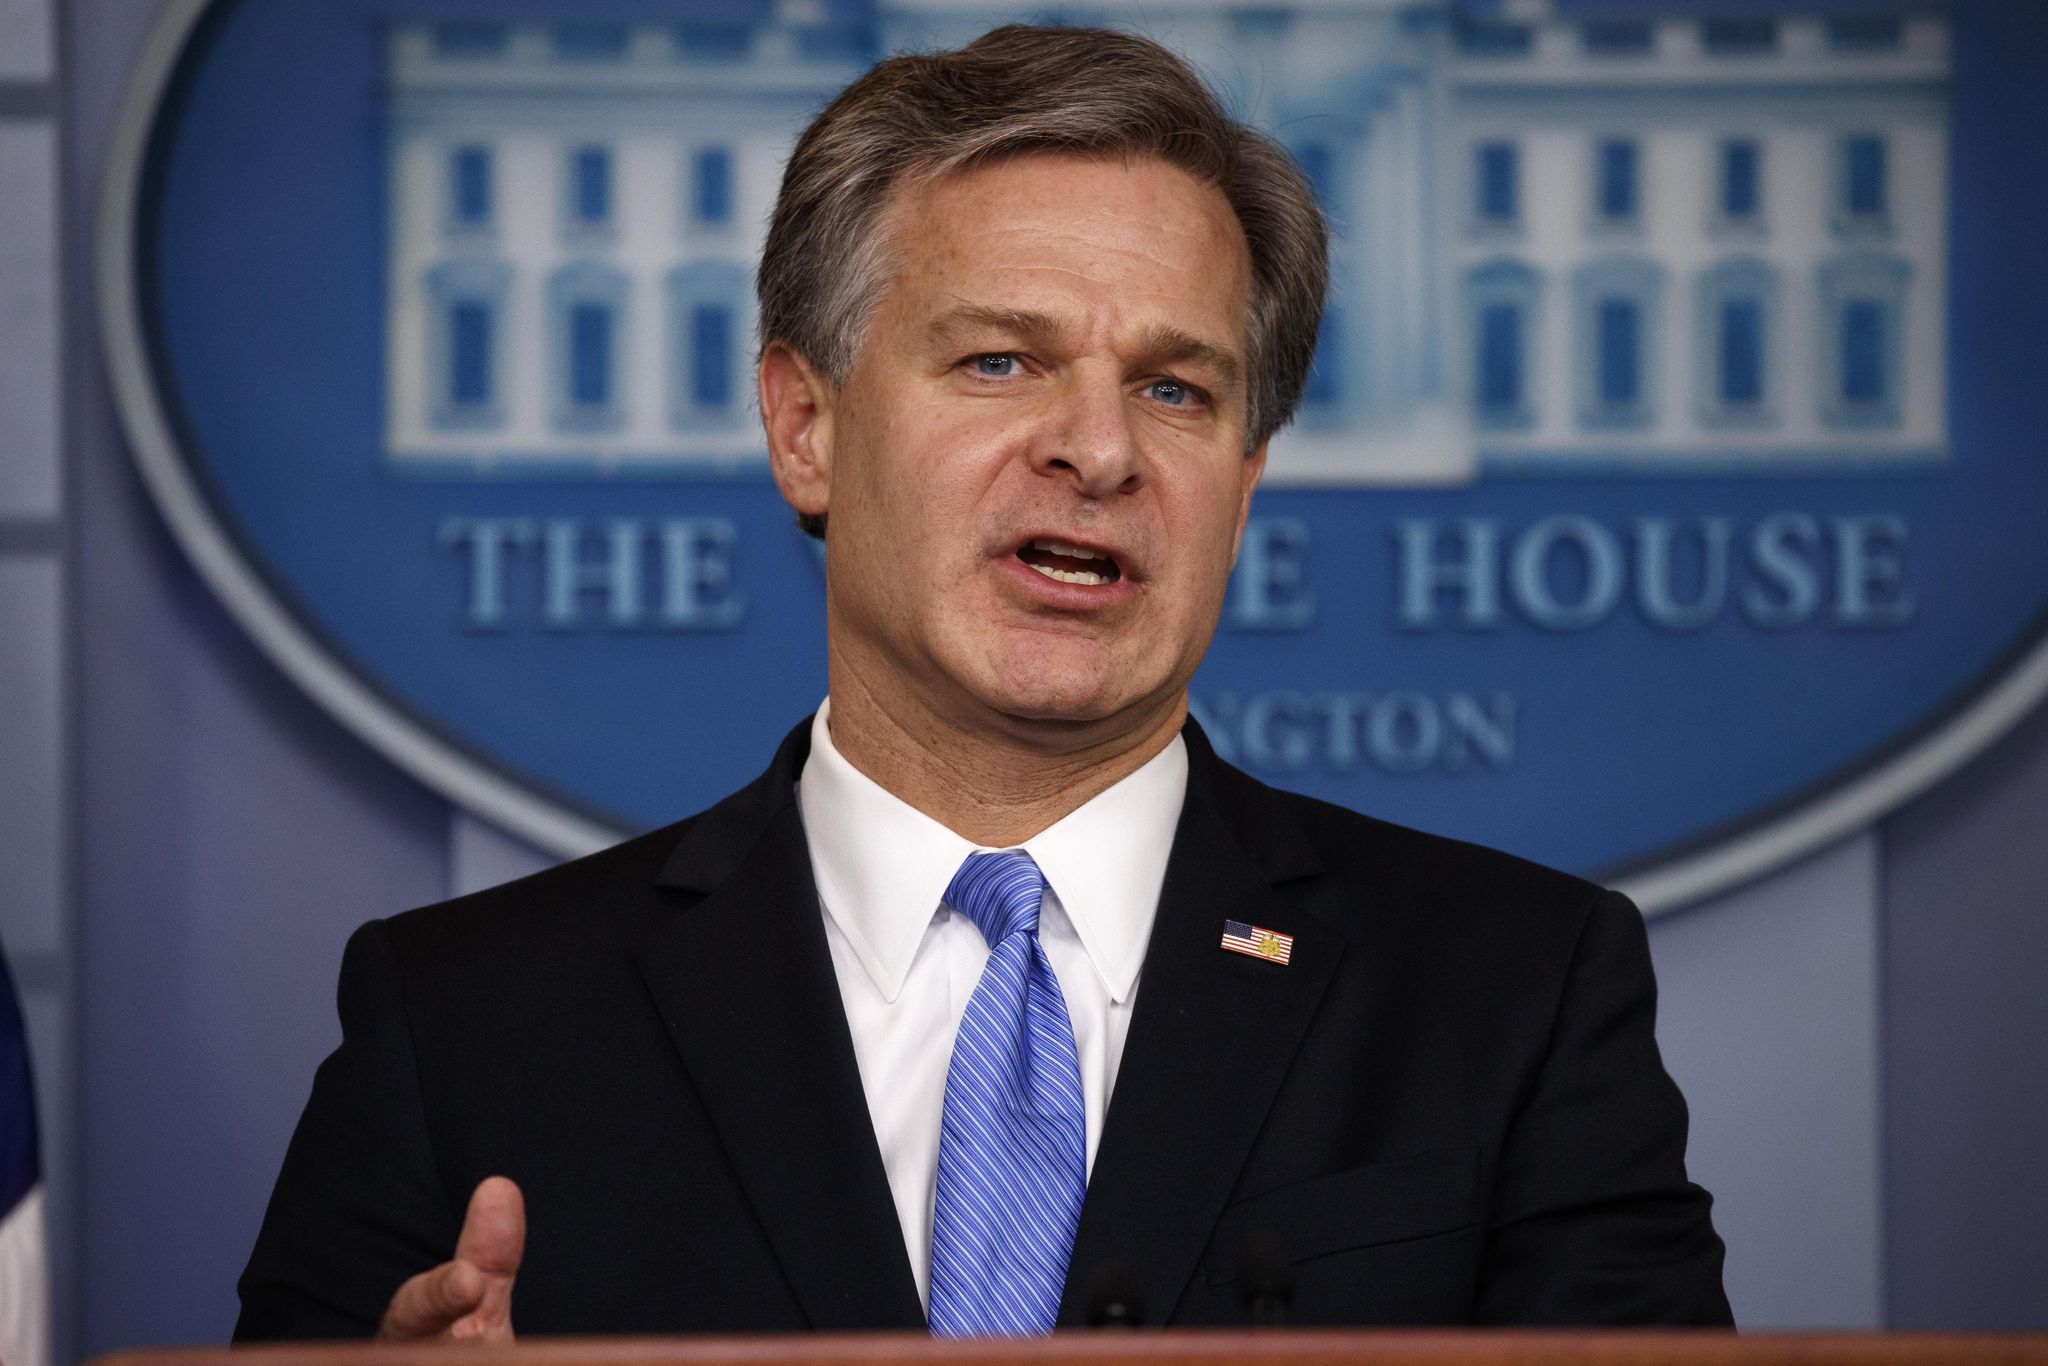 FBI Director Christopher Wray: 'Terrorism today moves at the speed of social media'